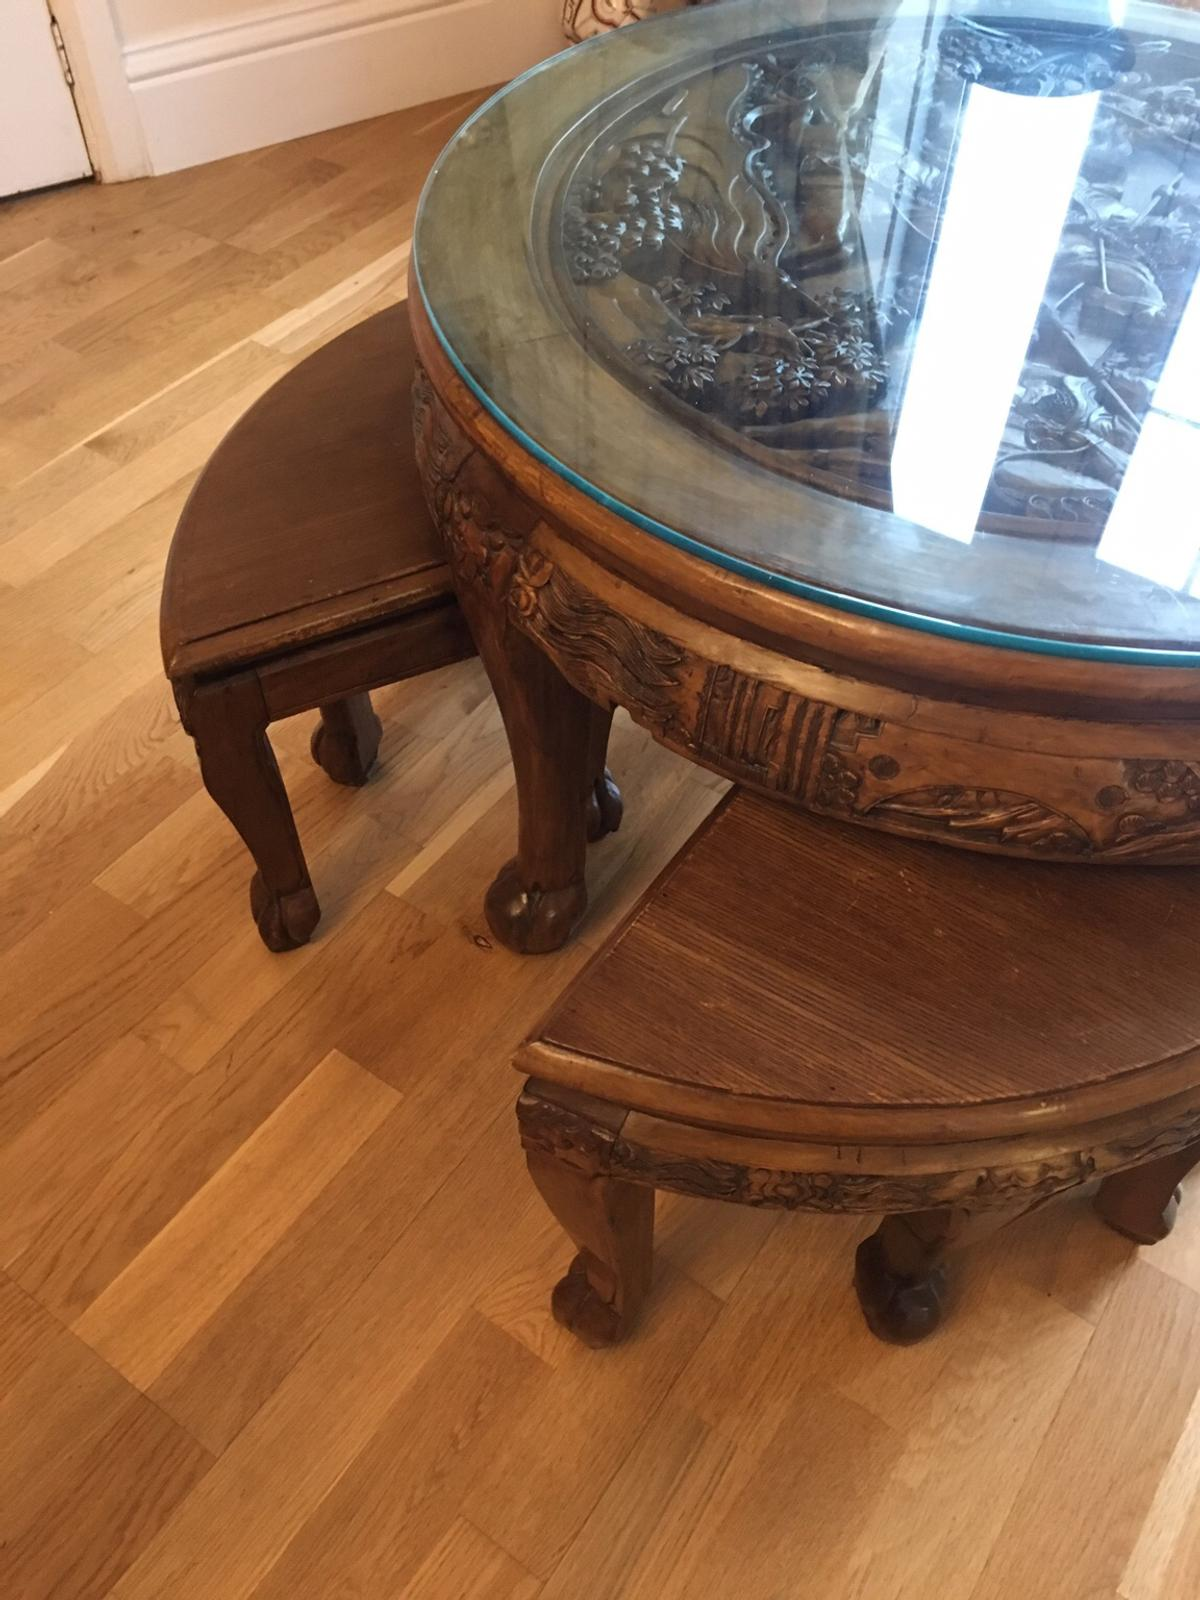 Chinese Coffee Table And 4 Stools In En4 Barnet For 300 00 For Sale Shpock